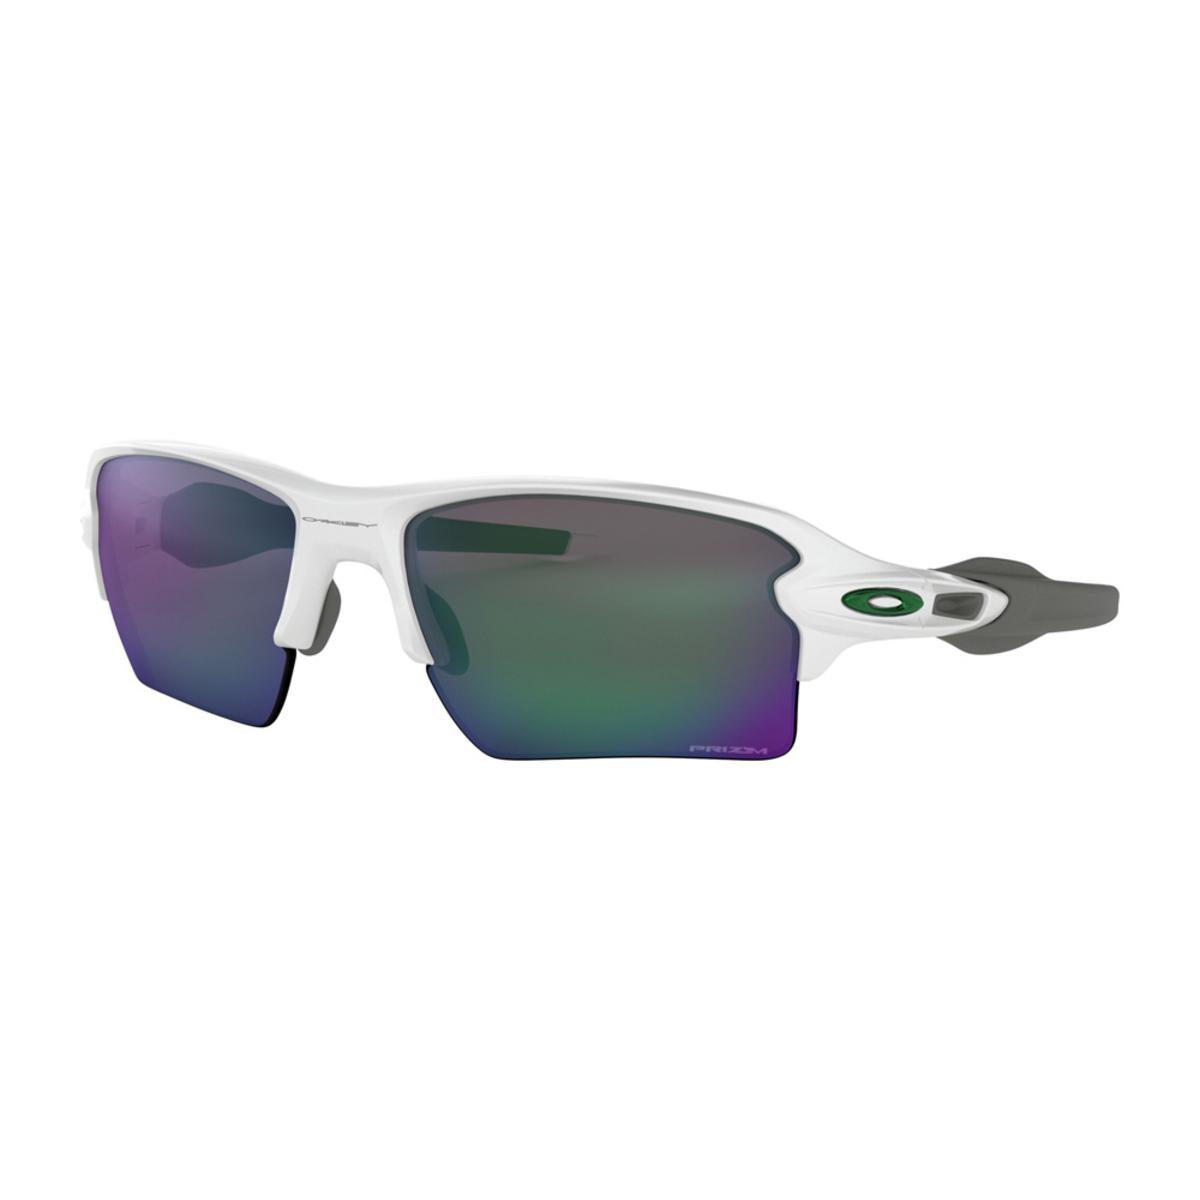 be4d0aa519 Oakley Flak 2.0 XL Team Colors Polished White Sunglasses w Prizm Jade - The  Warming Store